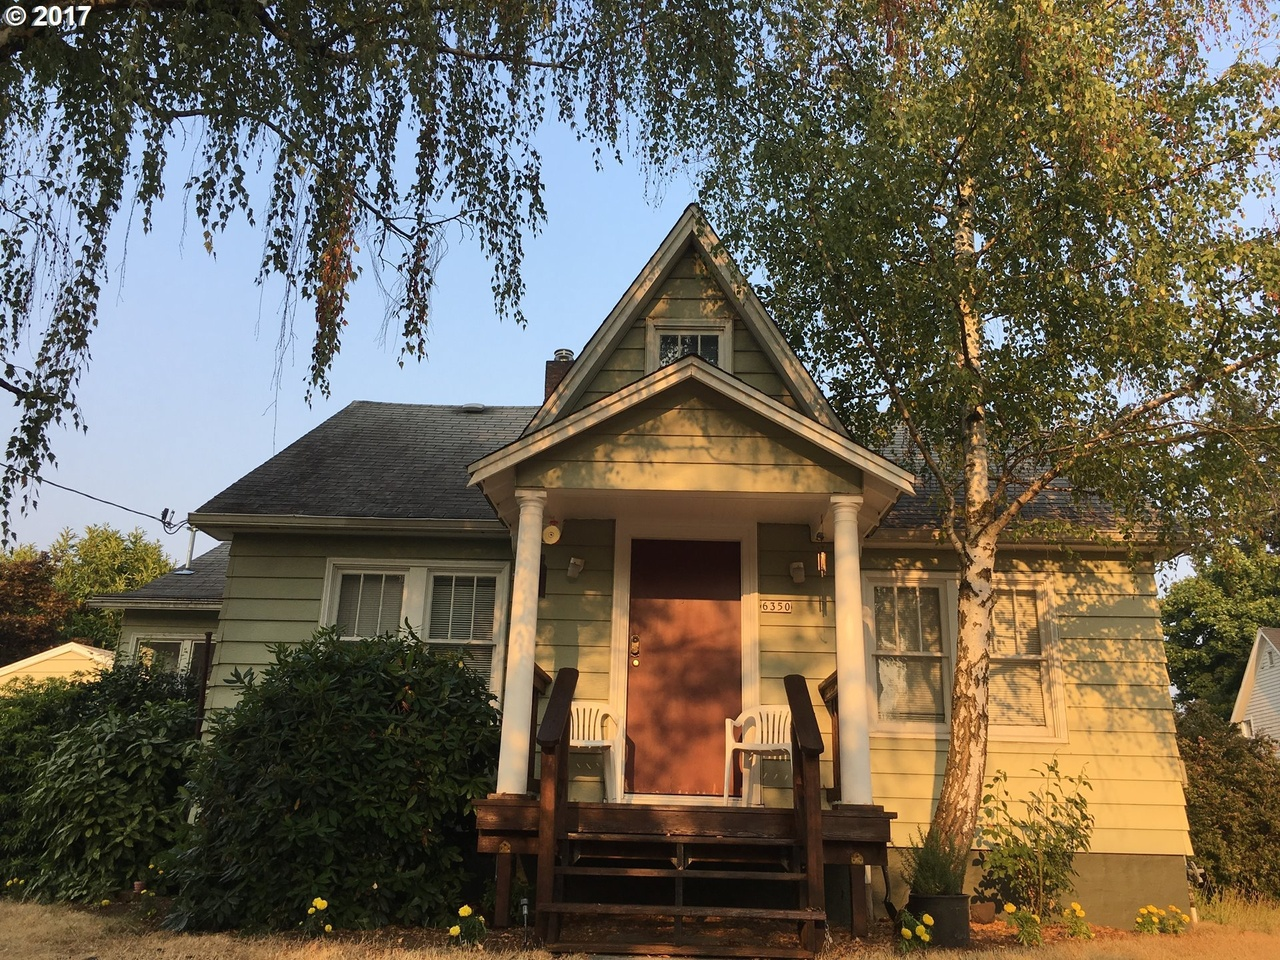 6350 N Vancouver Ave, Portland, OR 97217 | MLS# 17306463 | Redfin